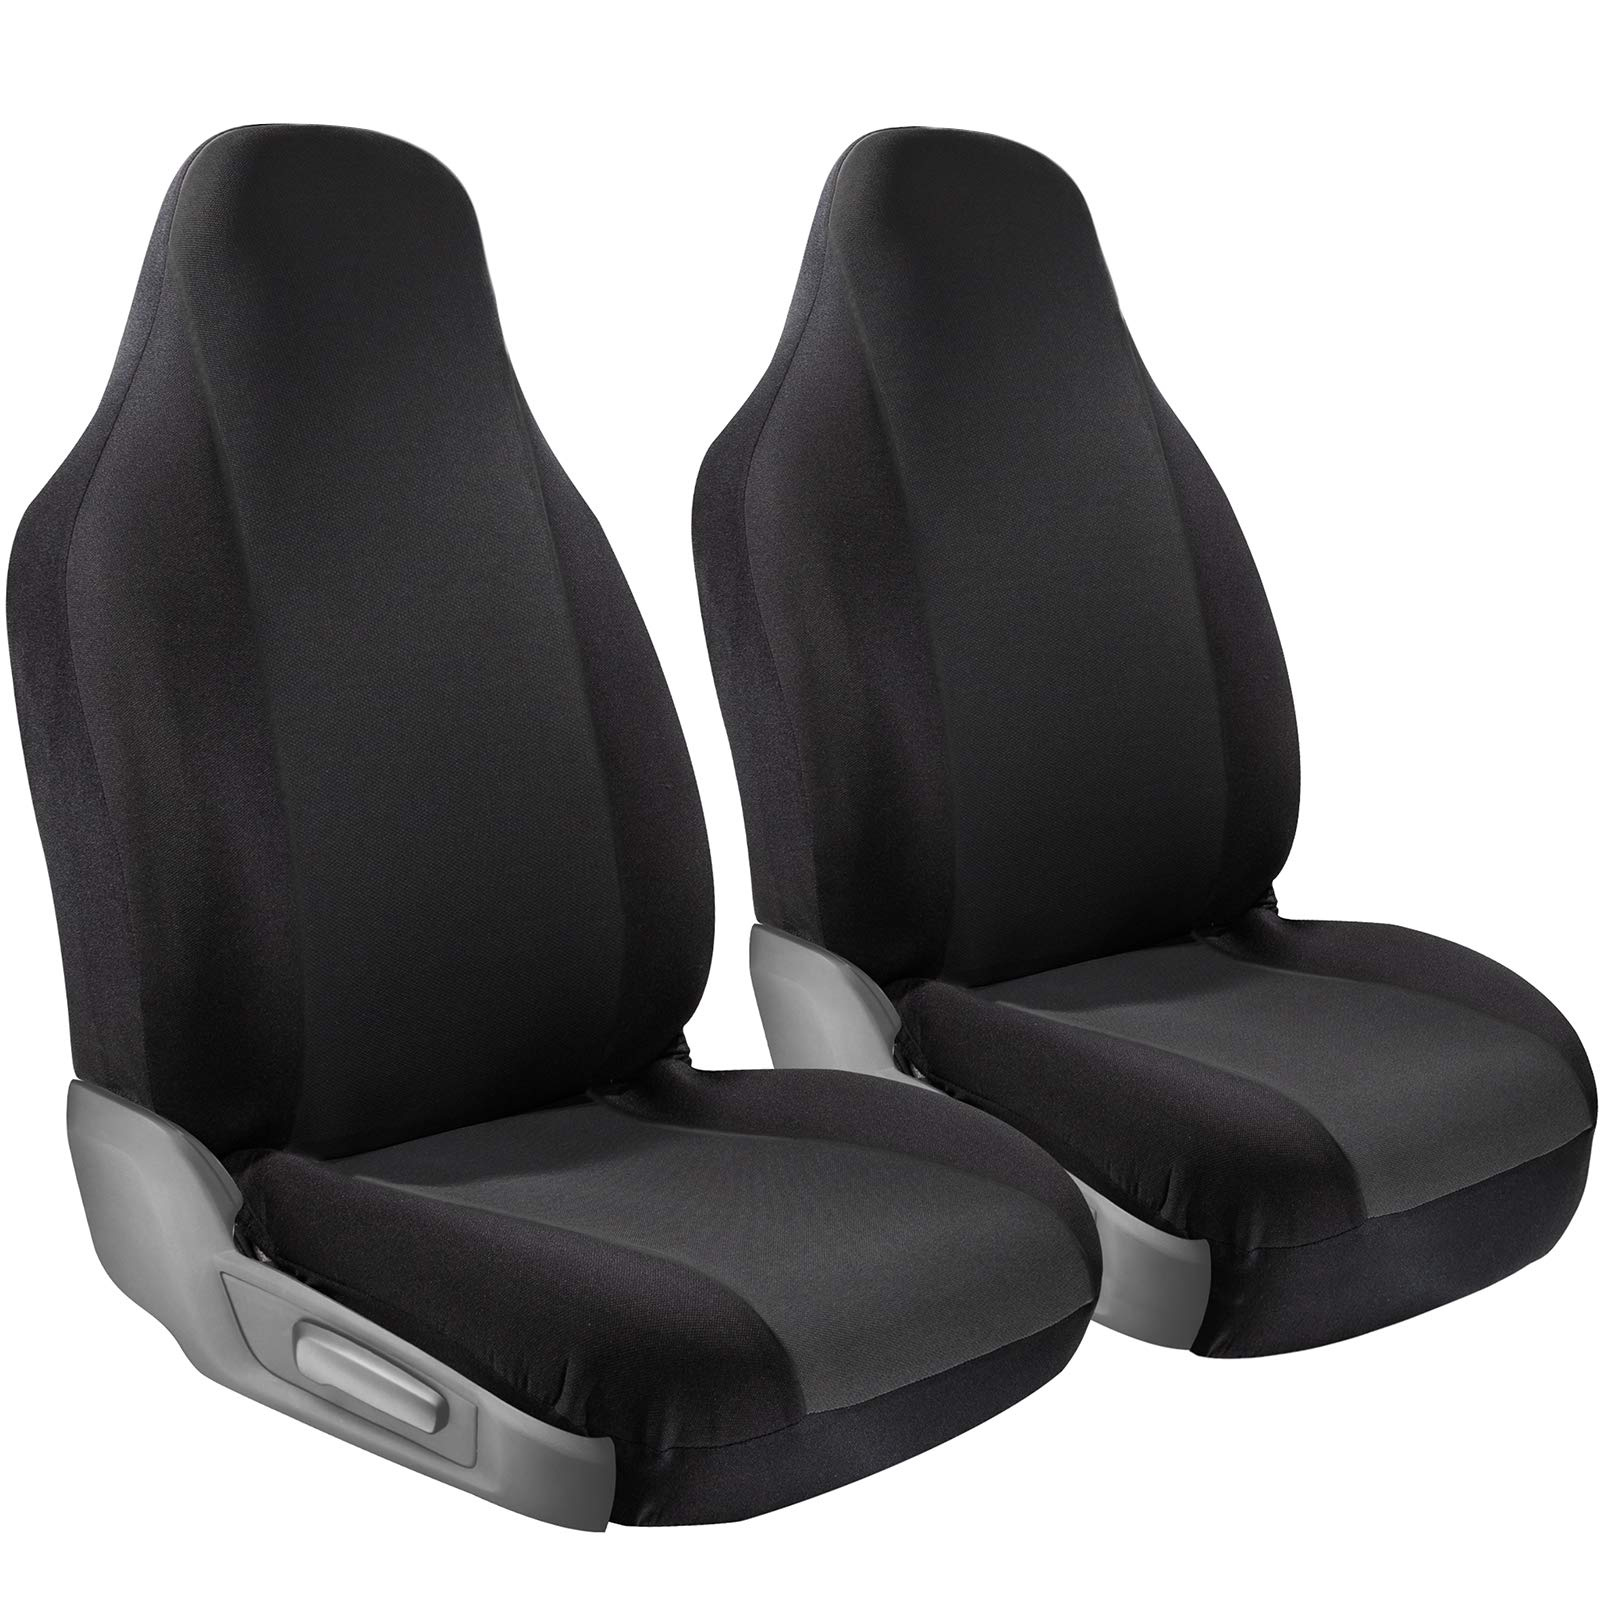 OxGord Car Seat Cover Protectors - Grip Control Non-Slip Poly Cloth with Two-Toned Front Low Bucket Seats Only - Universal Fit for Automotive Vehicles Cars, Trucks, SUVs, Vans -Black 2 Piece Set by OxGord